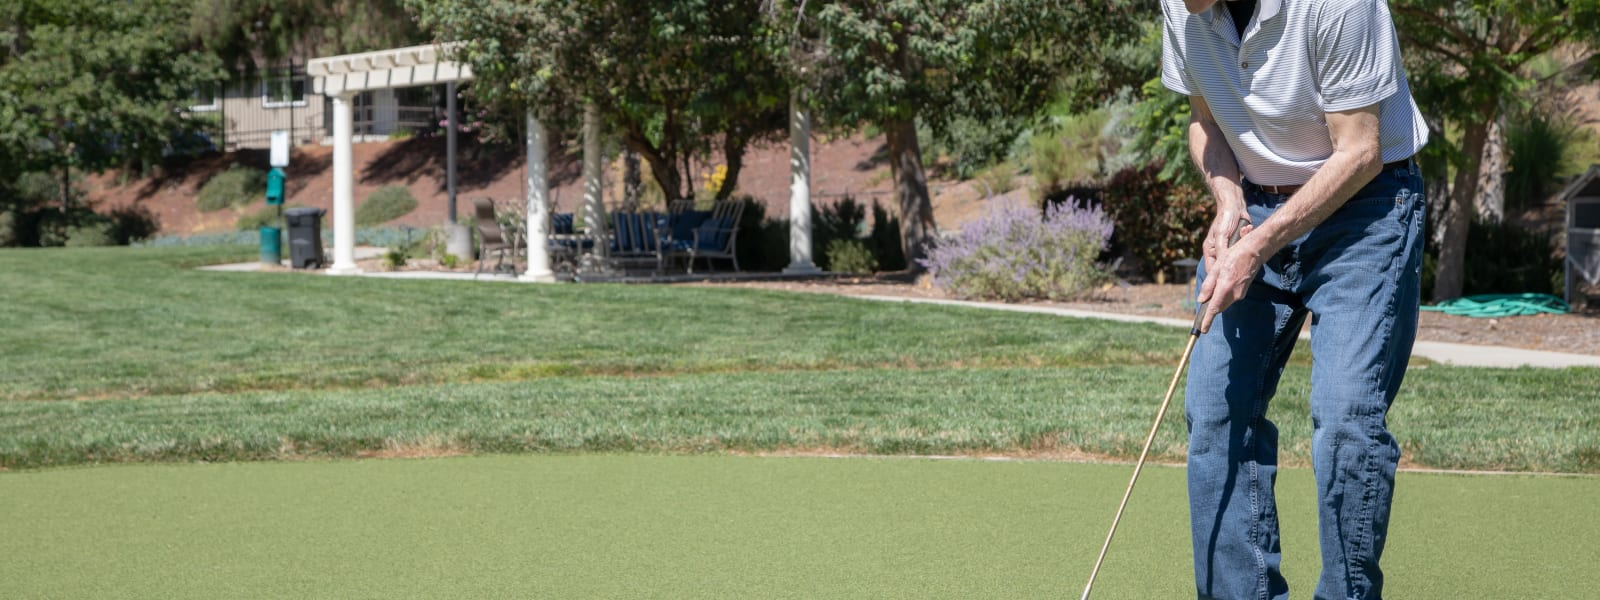 Putting green at Vista Gardens in Vista, California